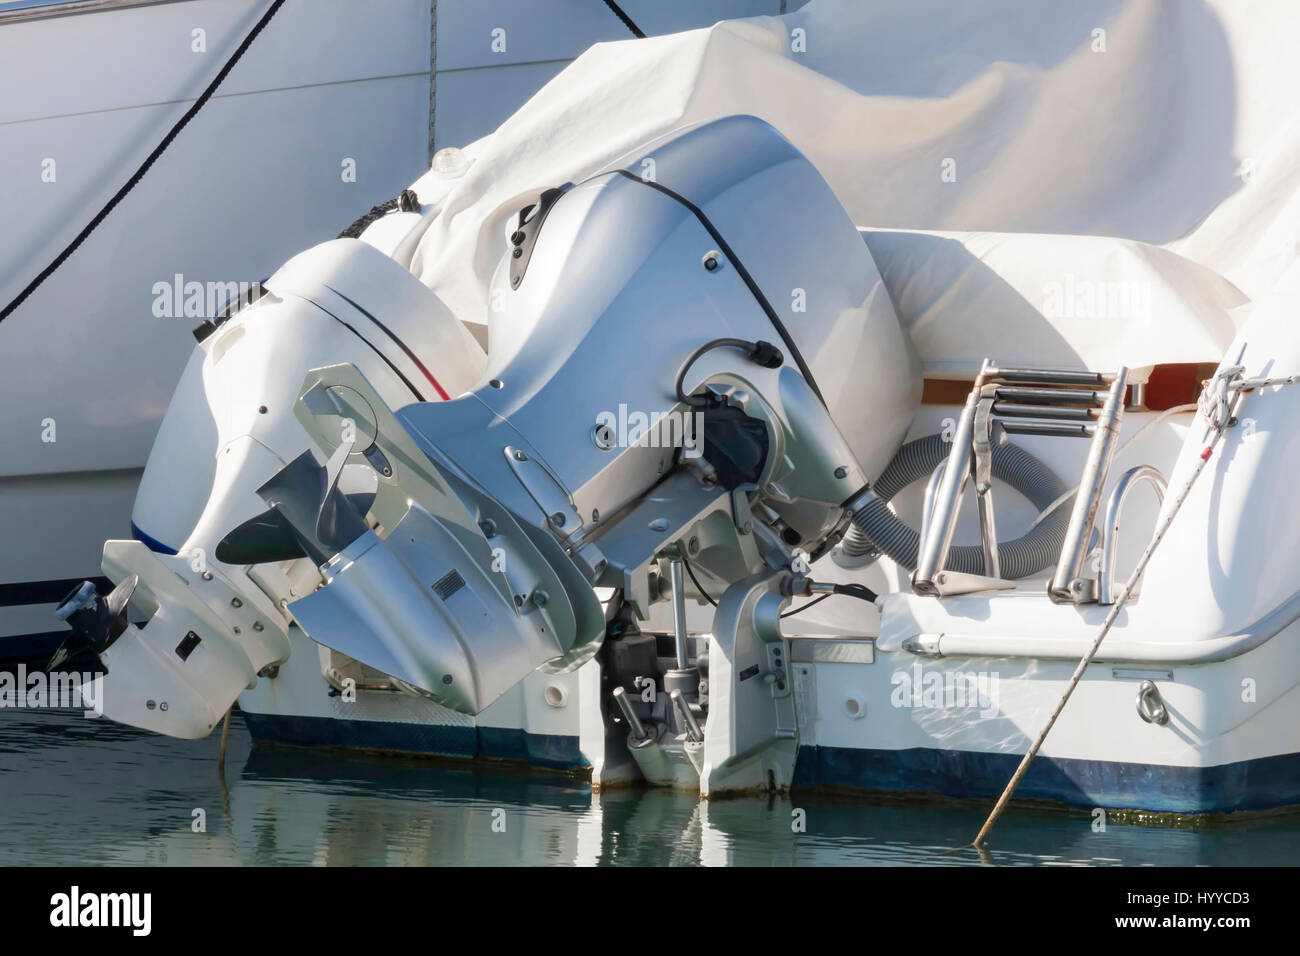 Couple of outboard engines - Stock Image